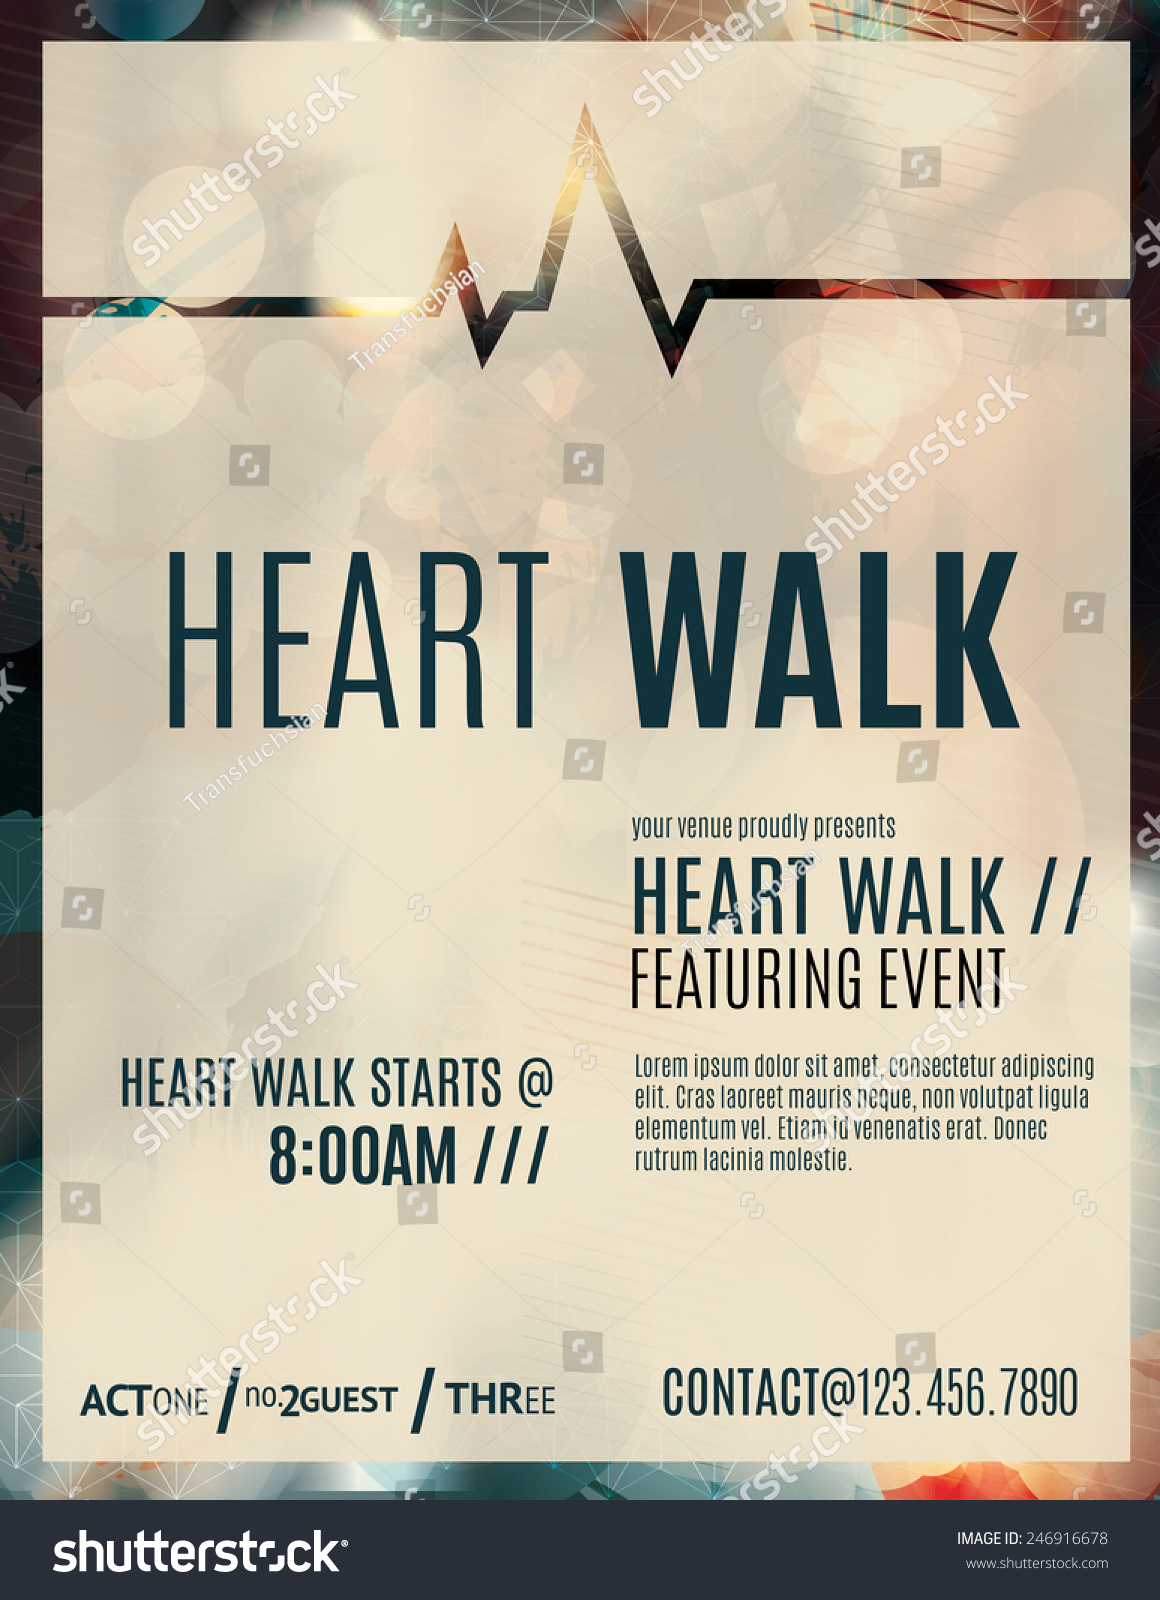 modern classy flyer poster template design stock vector  modern and classy flyer or poster template design layout to promote a heart walk fundraiser